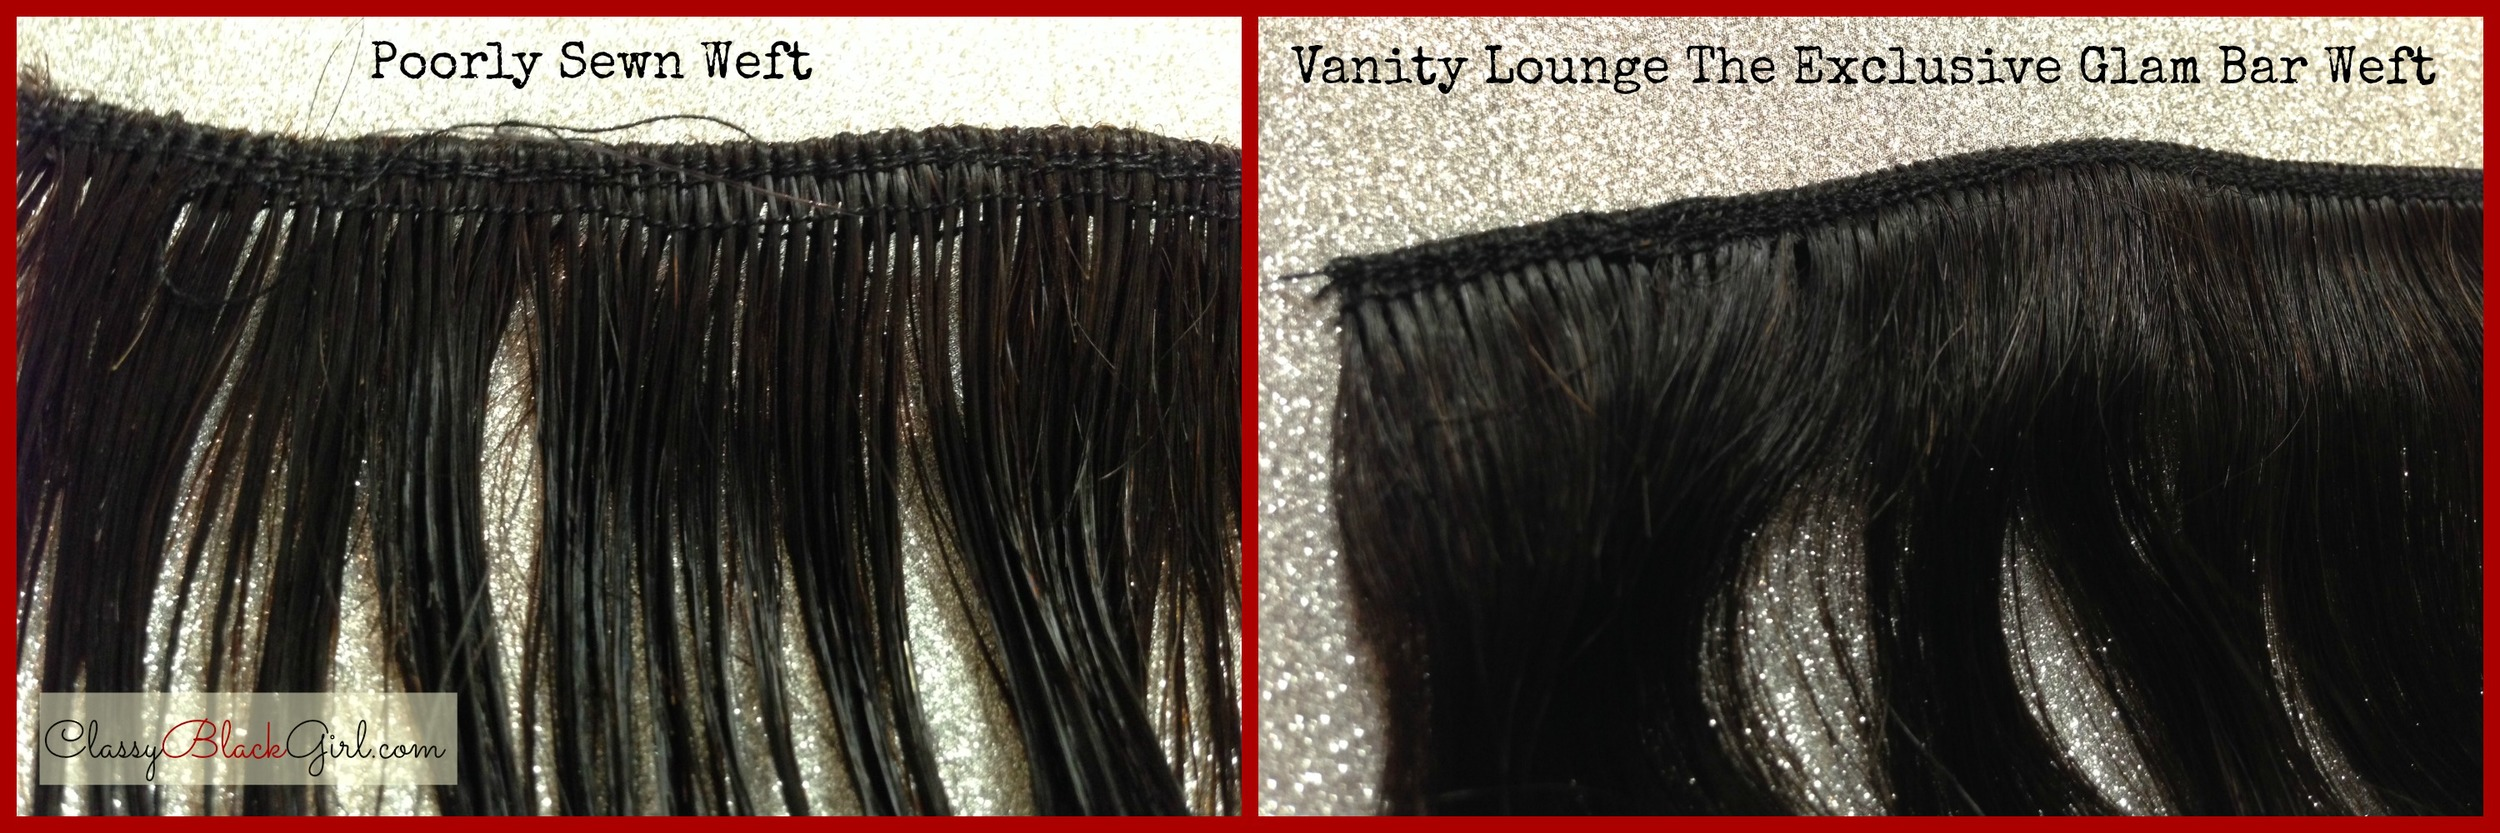 Weft Drama Vanity Lounge The Exclusive Glam Bar Classy Black Girl Weaves